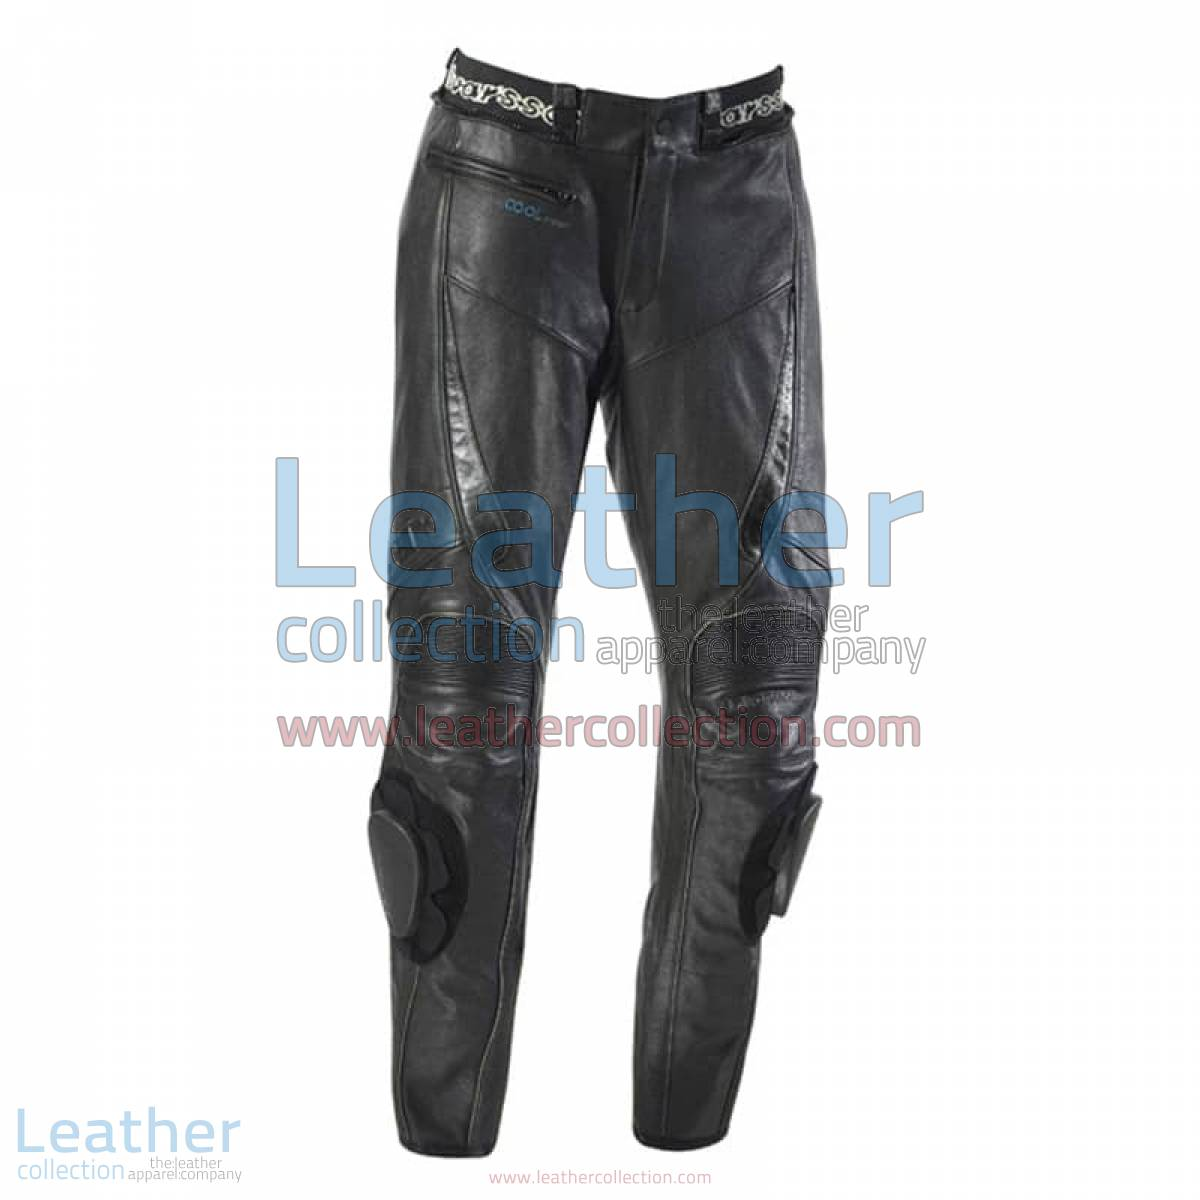 Leather Cool Motorcycle Pants | leather motorcycle pants,cool motorcycle pants